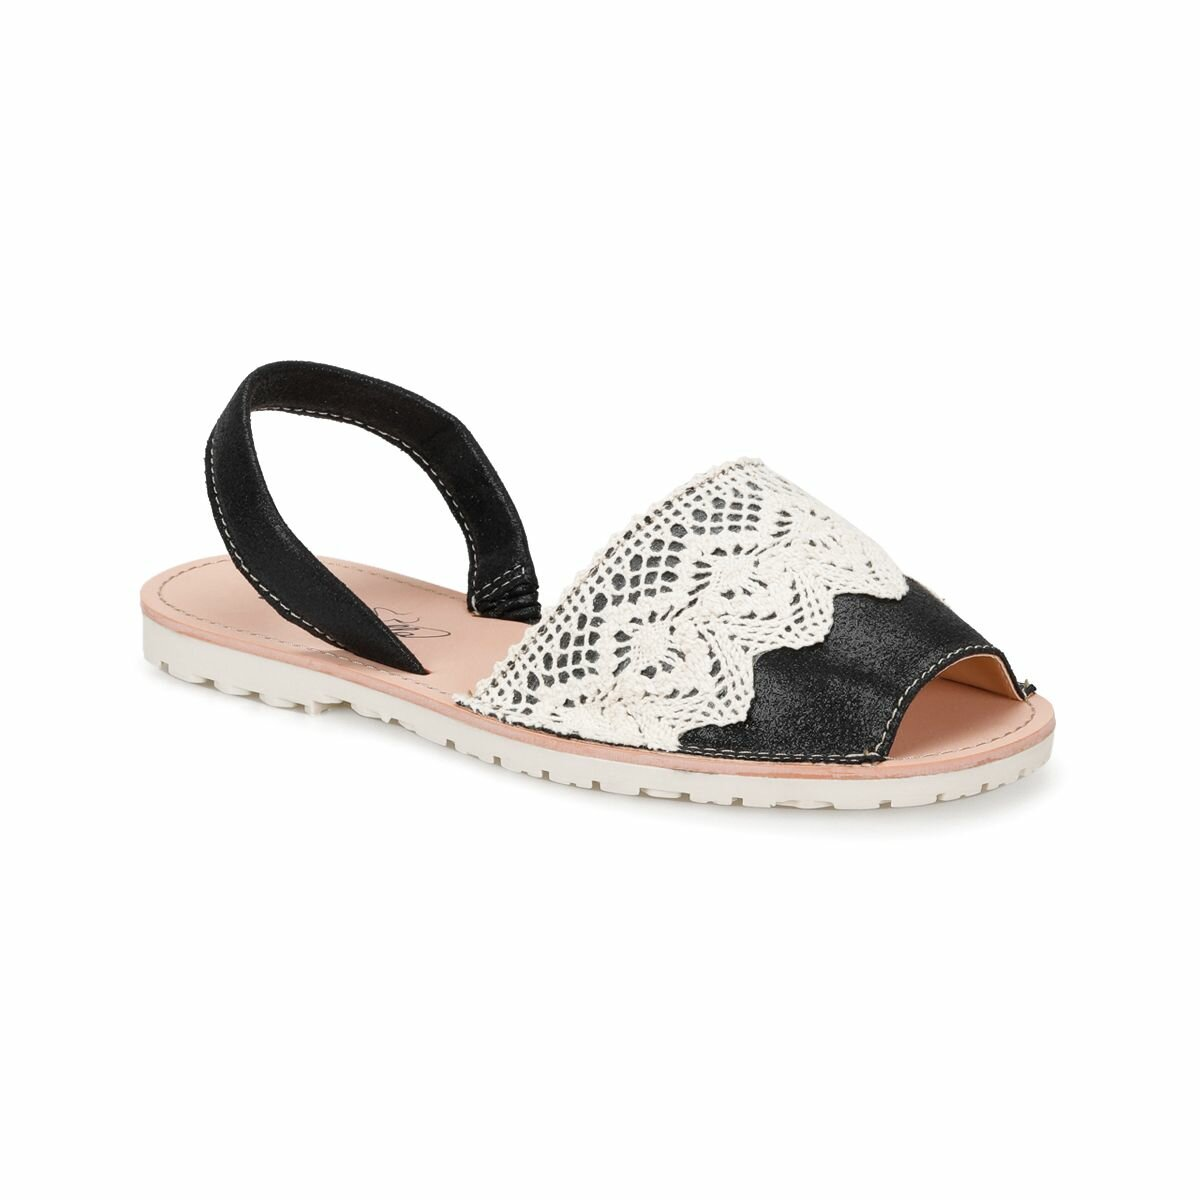 FLO CS18138 Black Women Sandals Art Bella